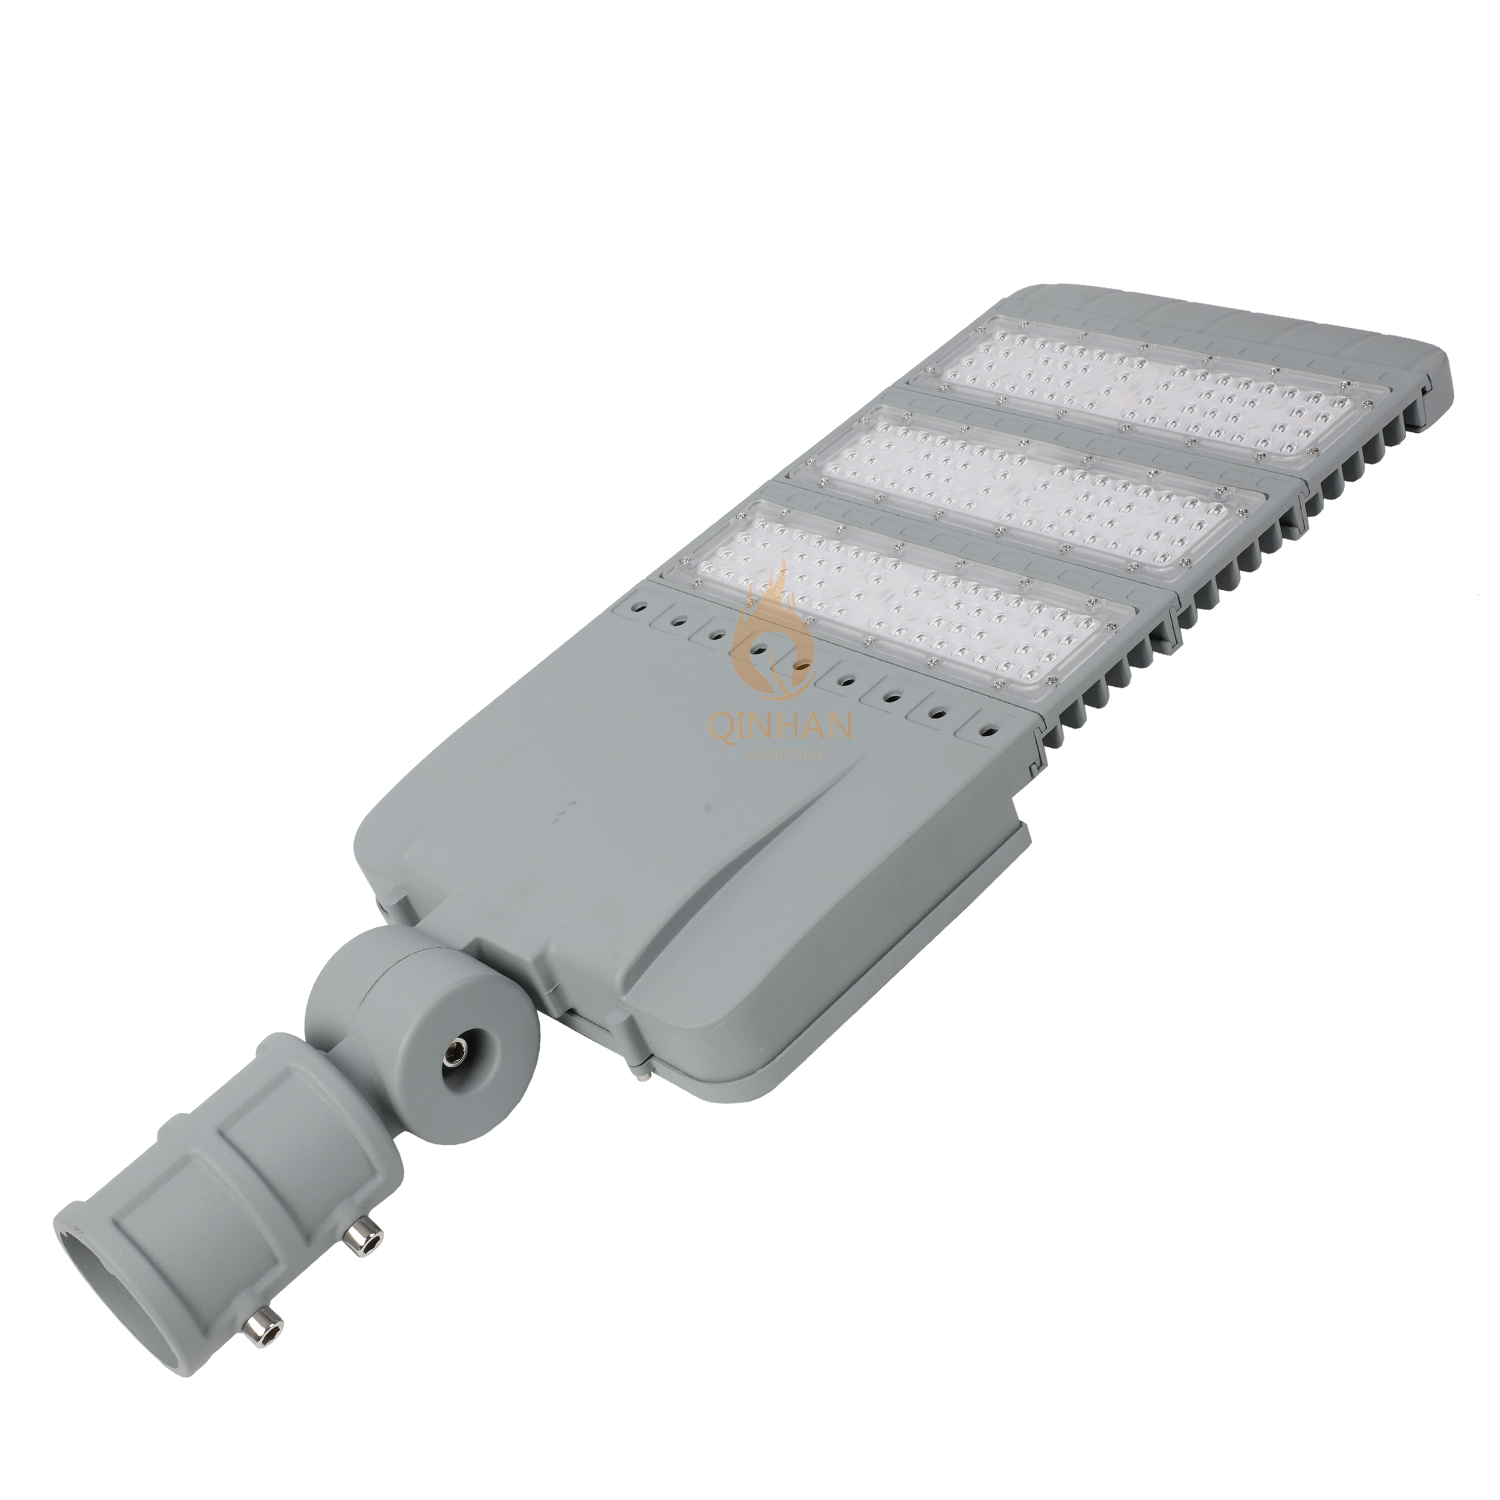 IP65 Modular High Power 150lm/W 120W Adjustable LED Street Road Light with 5 Years Warranty